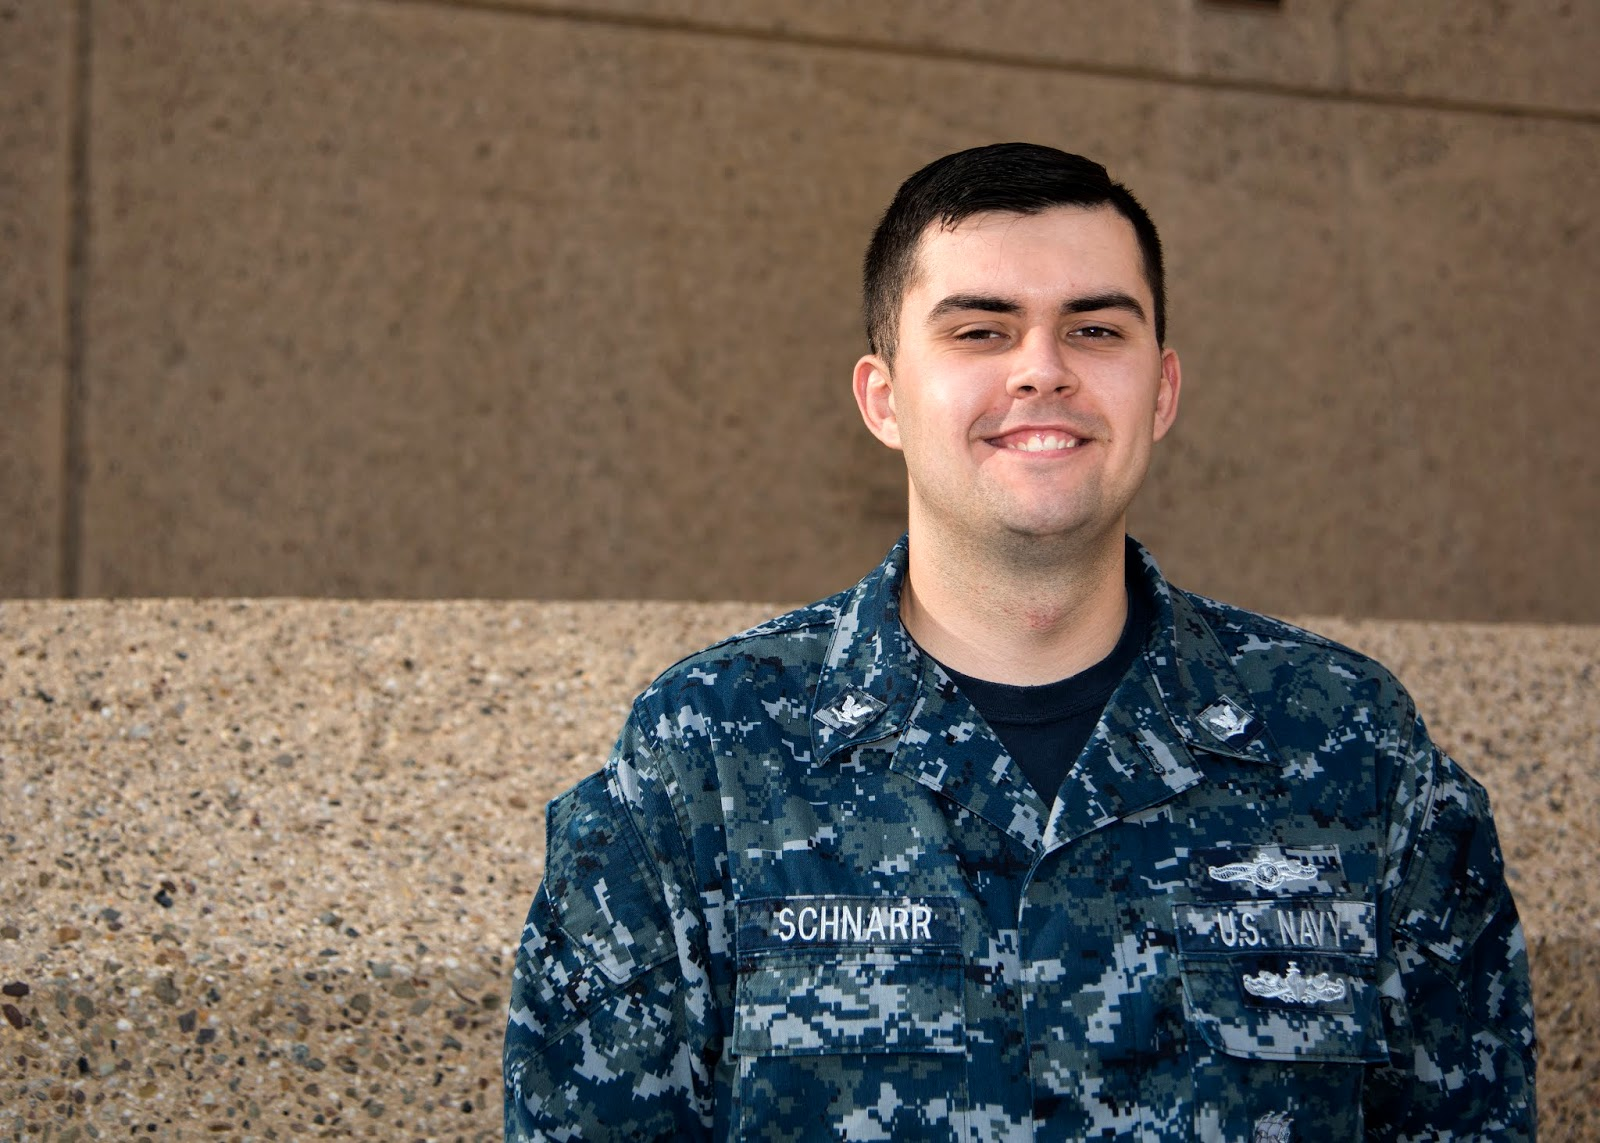 A man in a U.S. Navy uniform poses for a photo outside in front of the University logo.